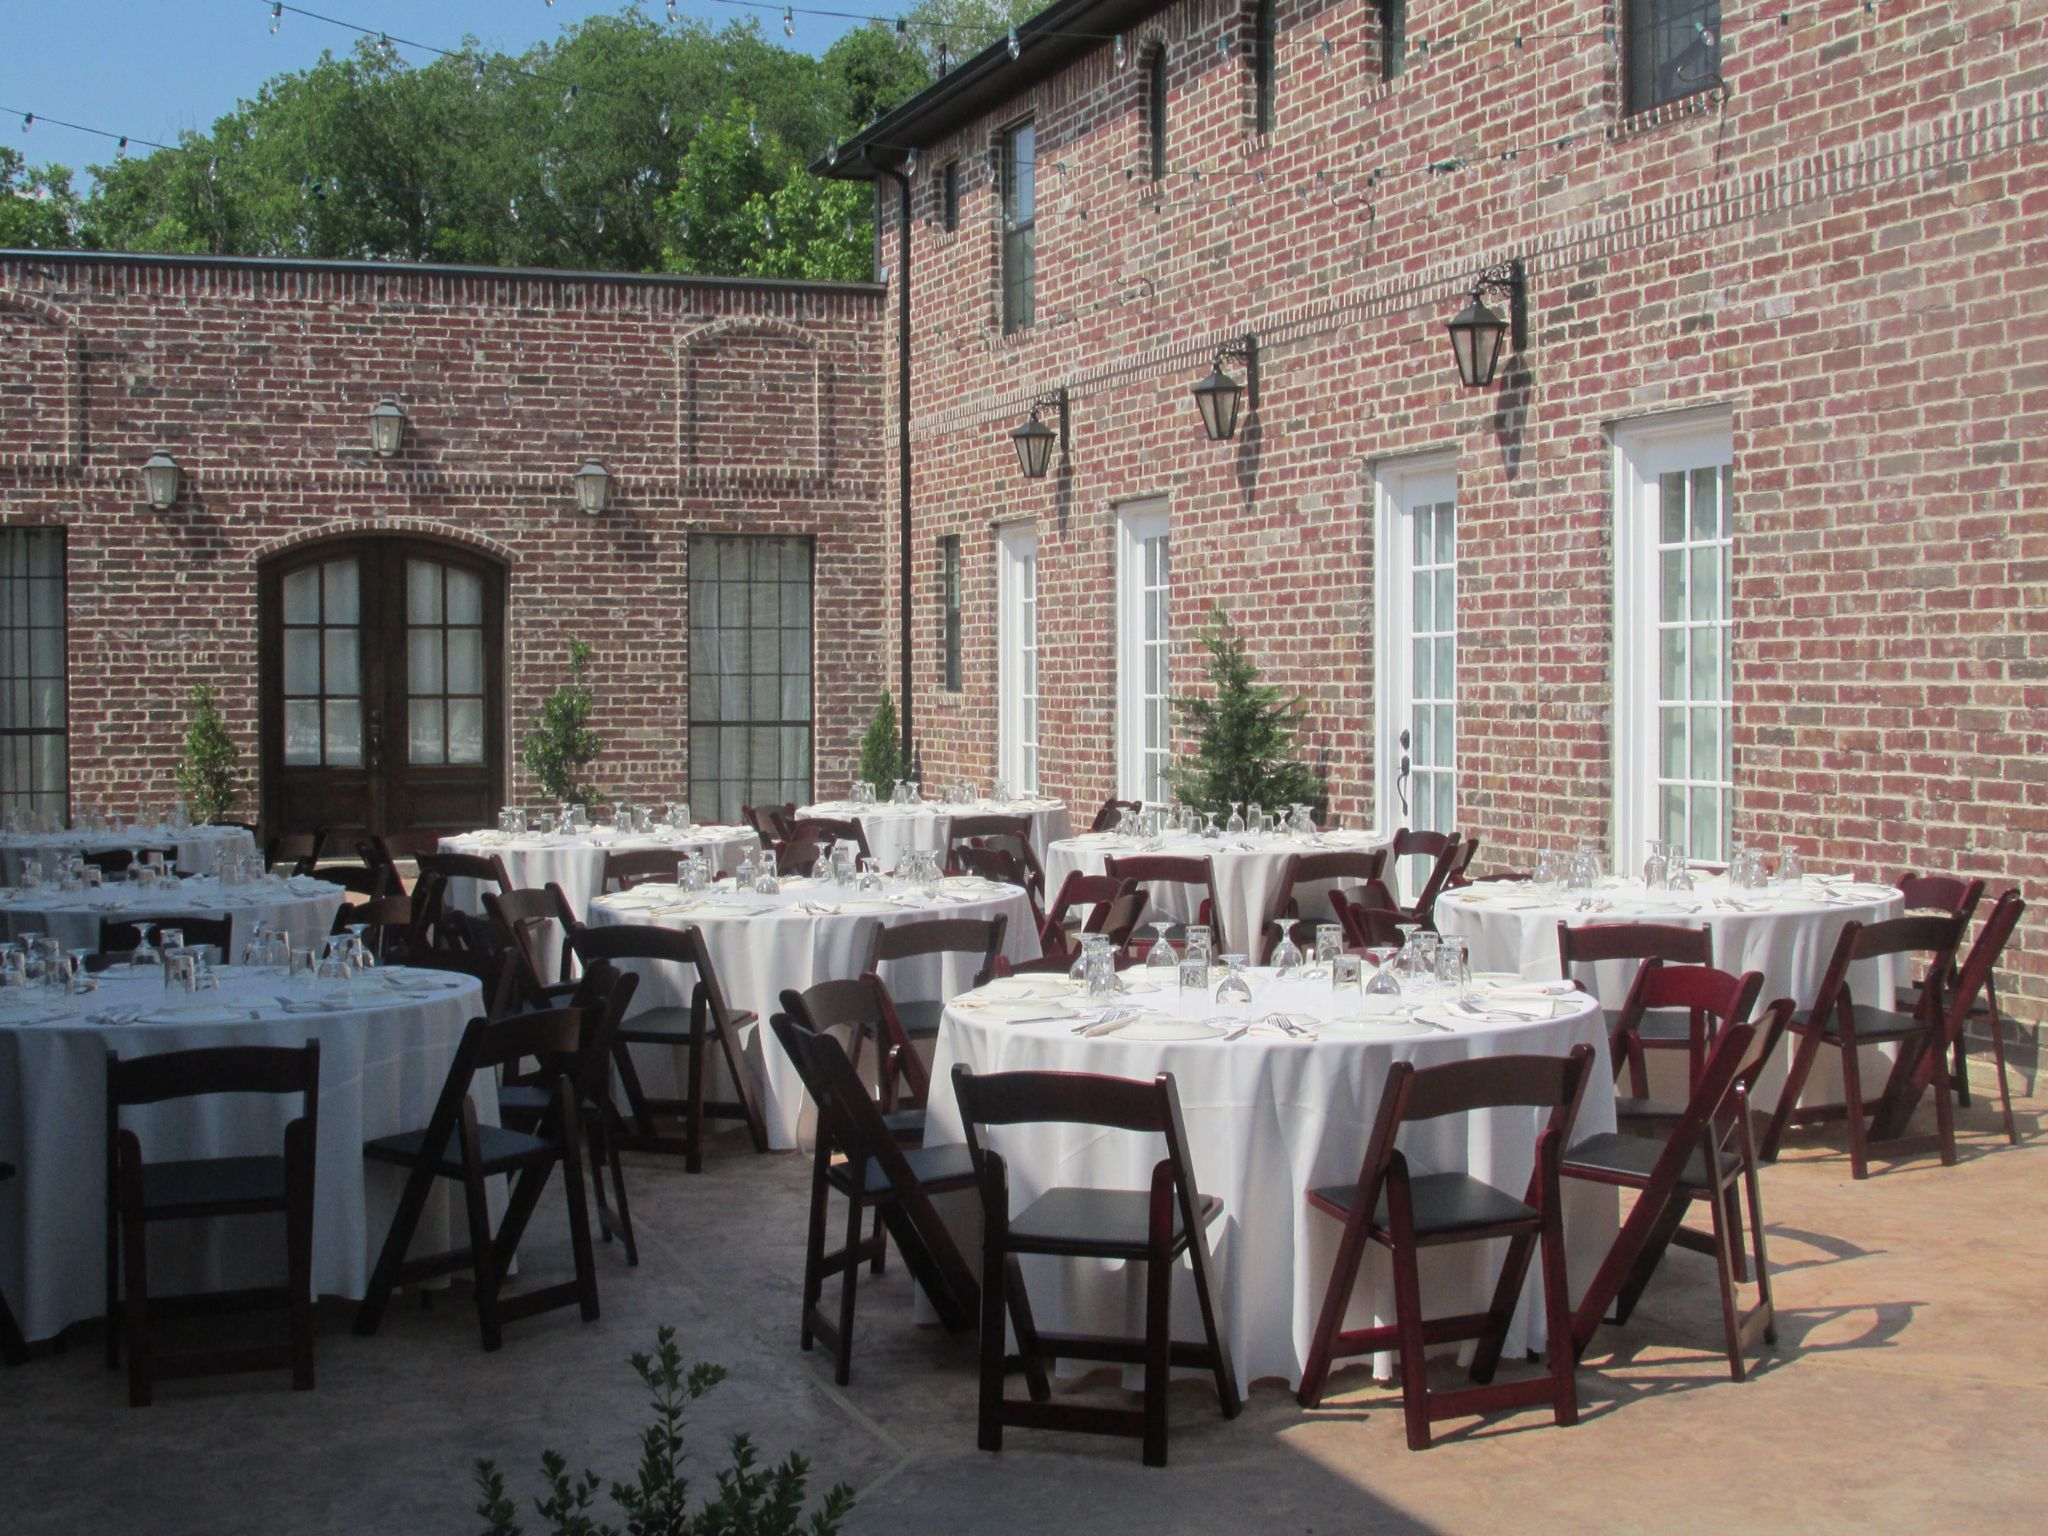 McKinney Wedding And Event Venue La Cour Was Inspired By The Historic Streets Of New Orleans With An Appreciation Outdoors